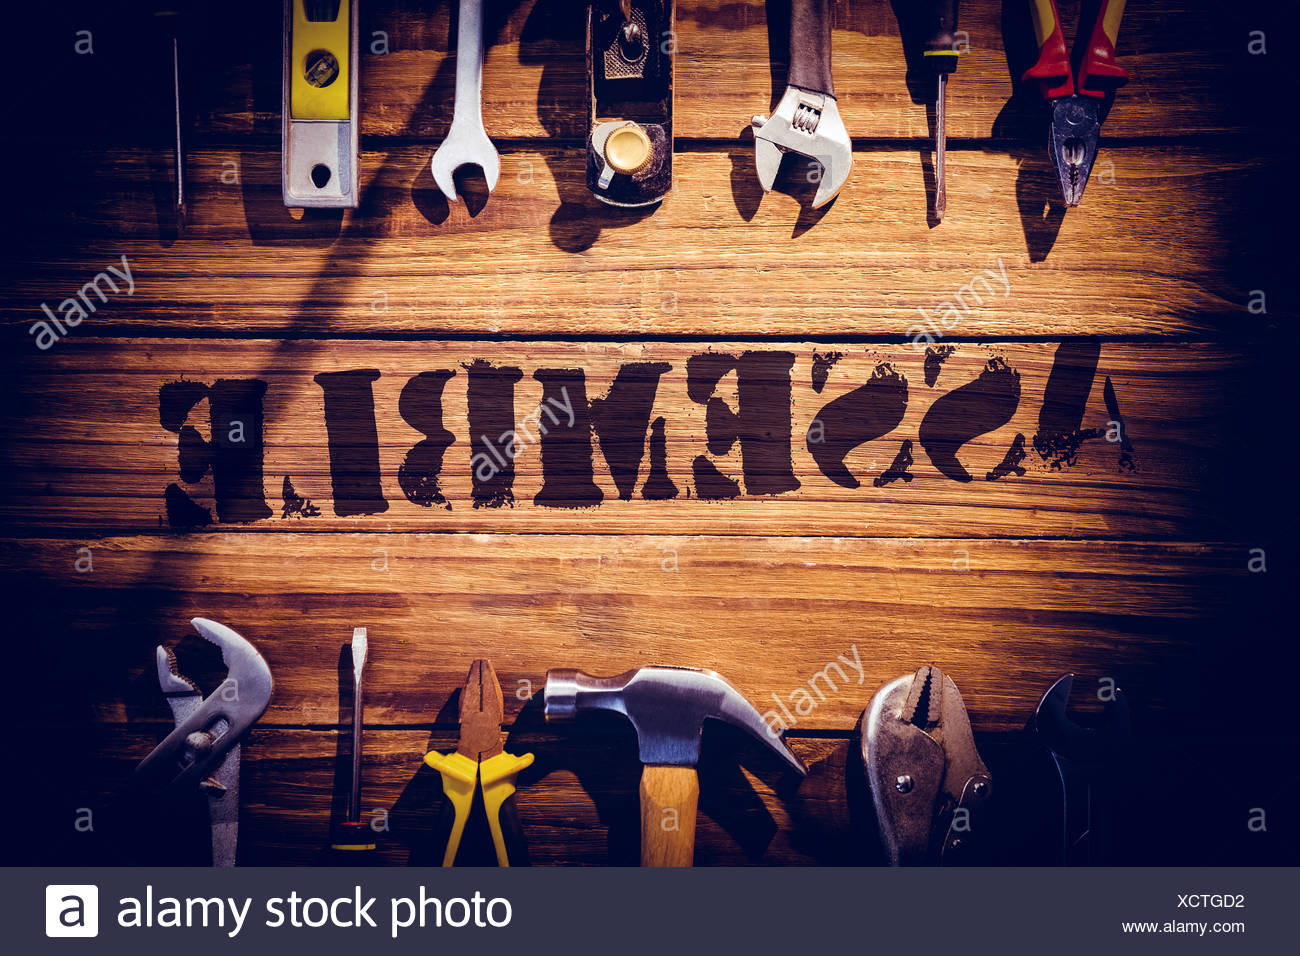 Assemble against desk with tools - Stock Image